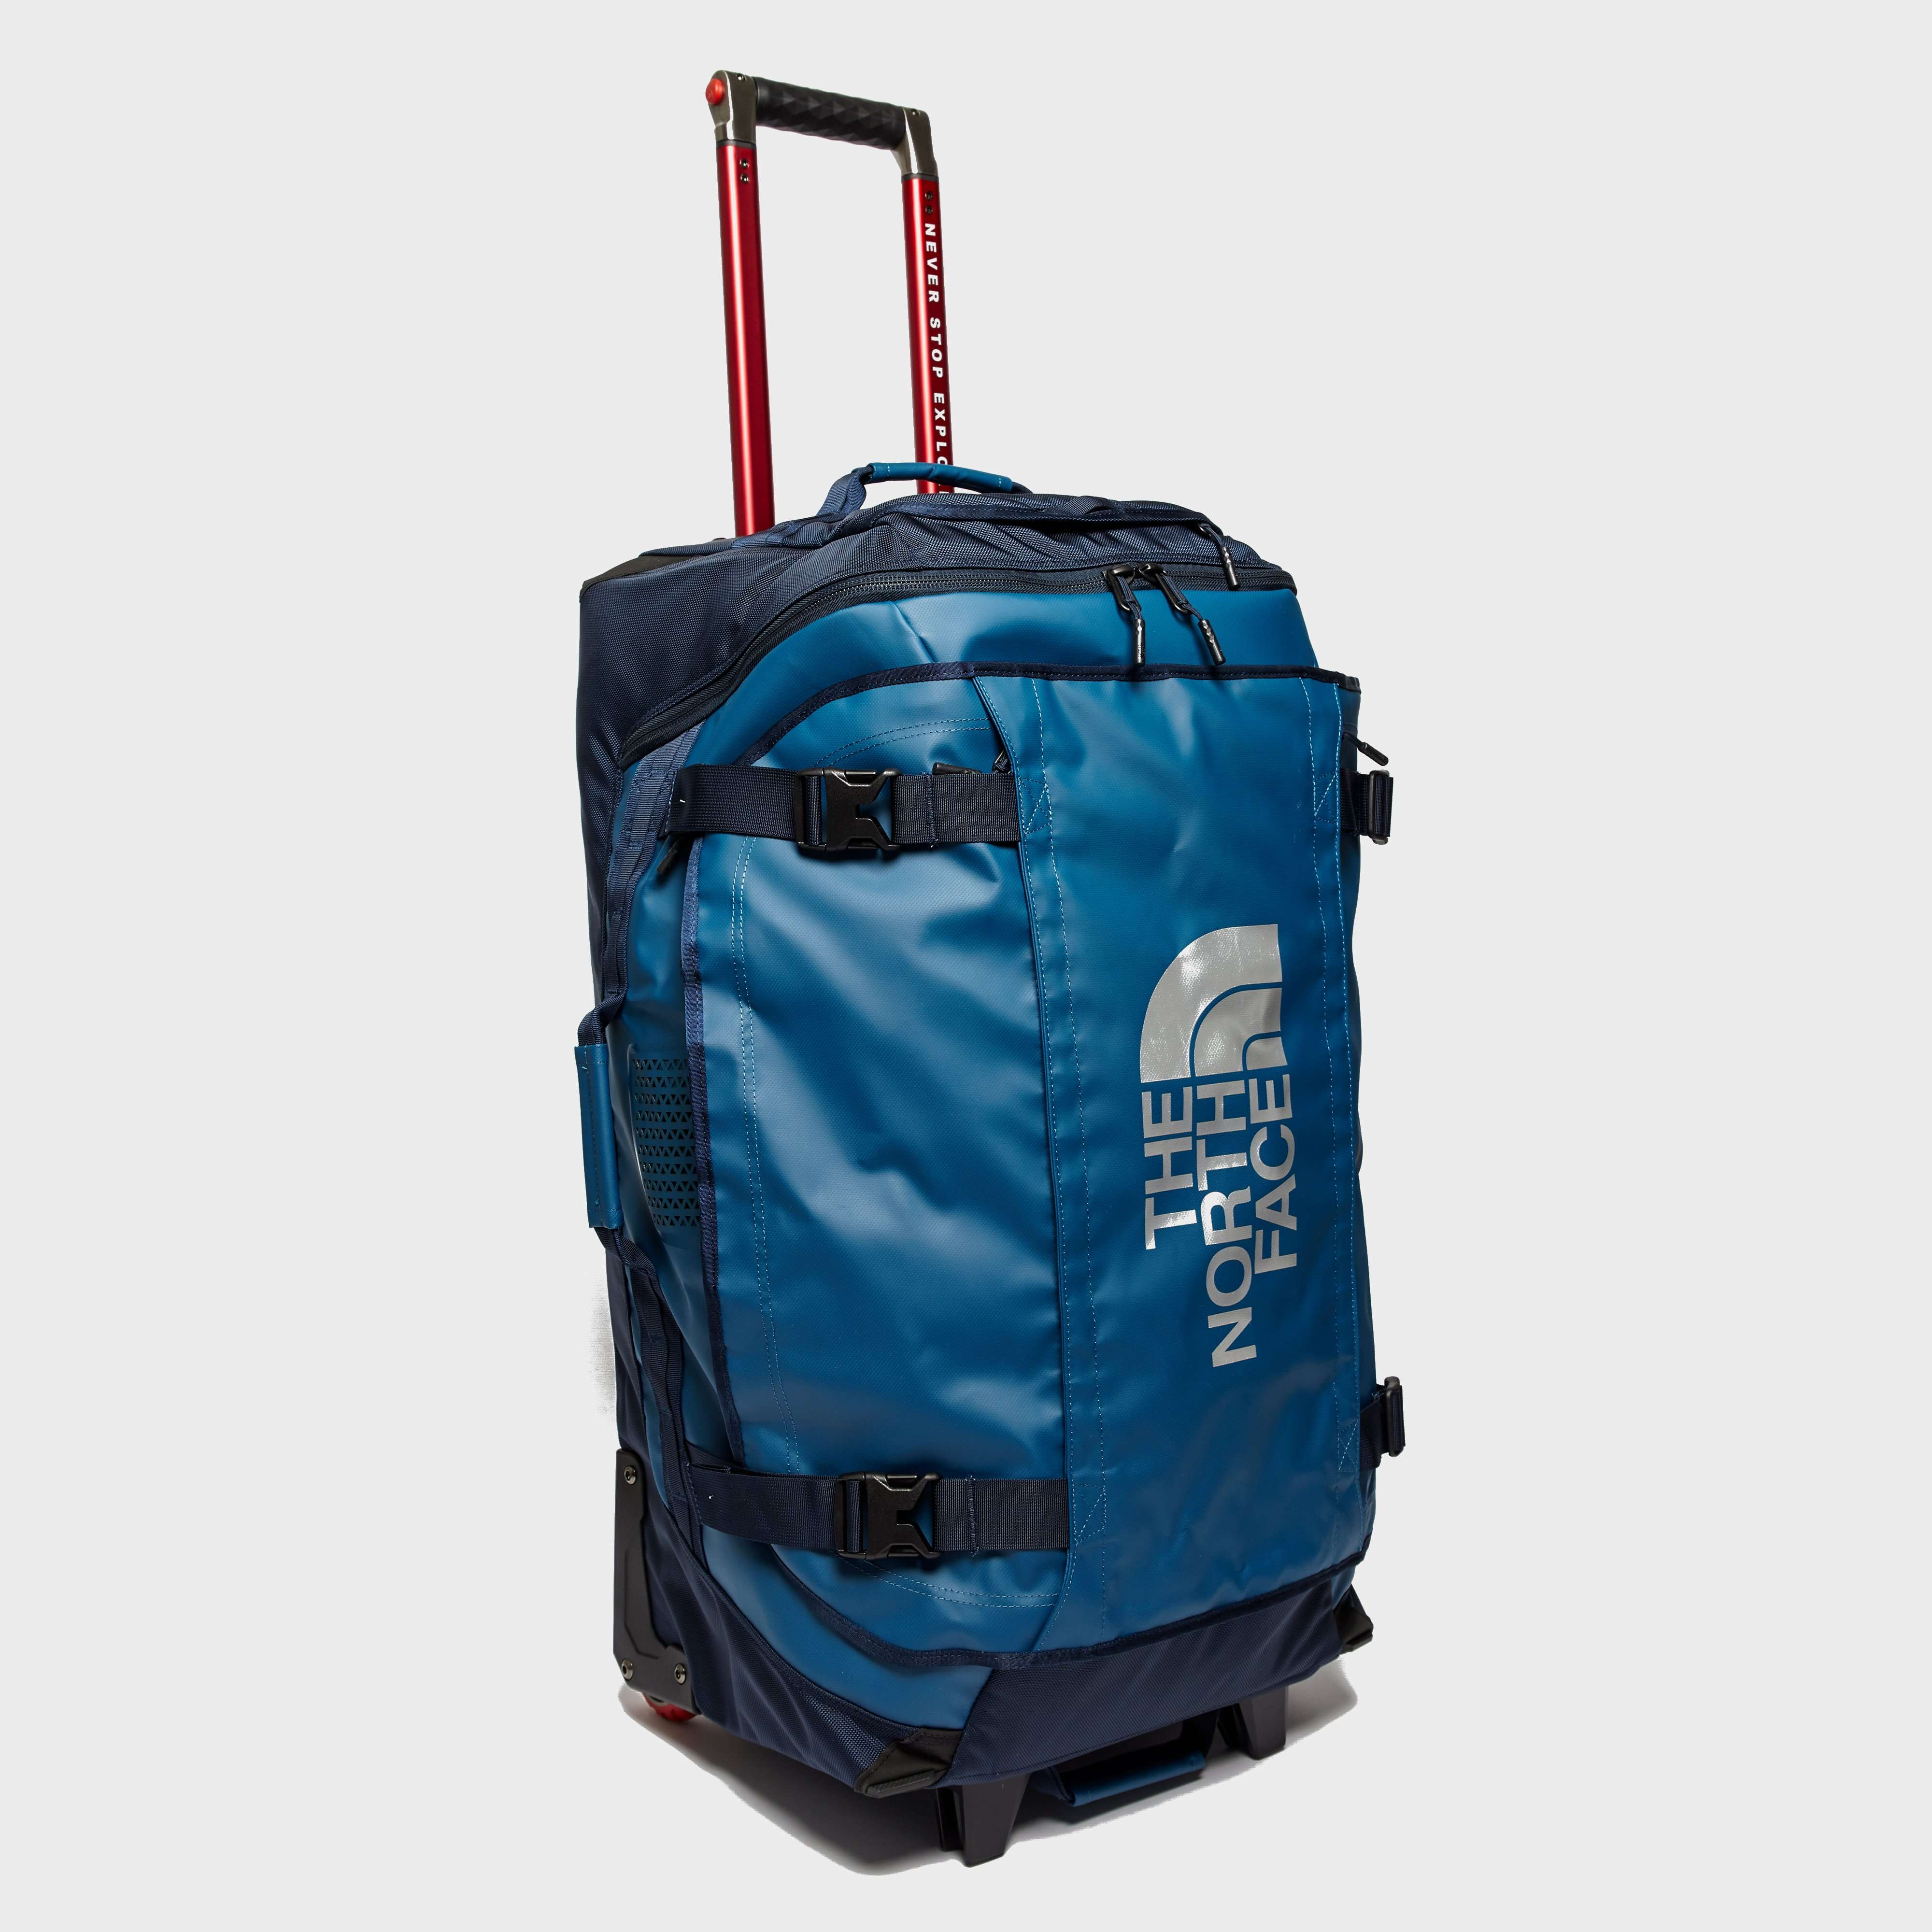 THE NORTH FACE Rolling Thunder 30L Travel Bag